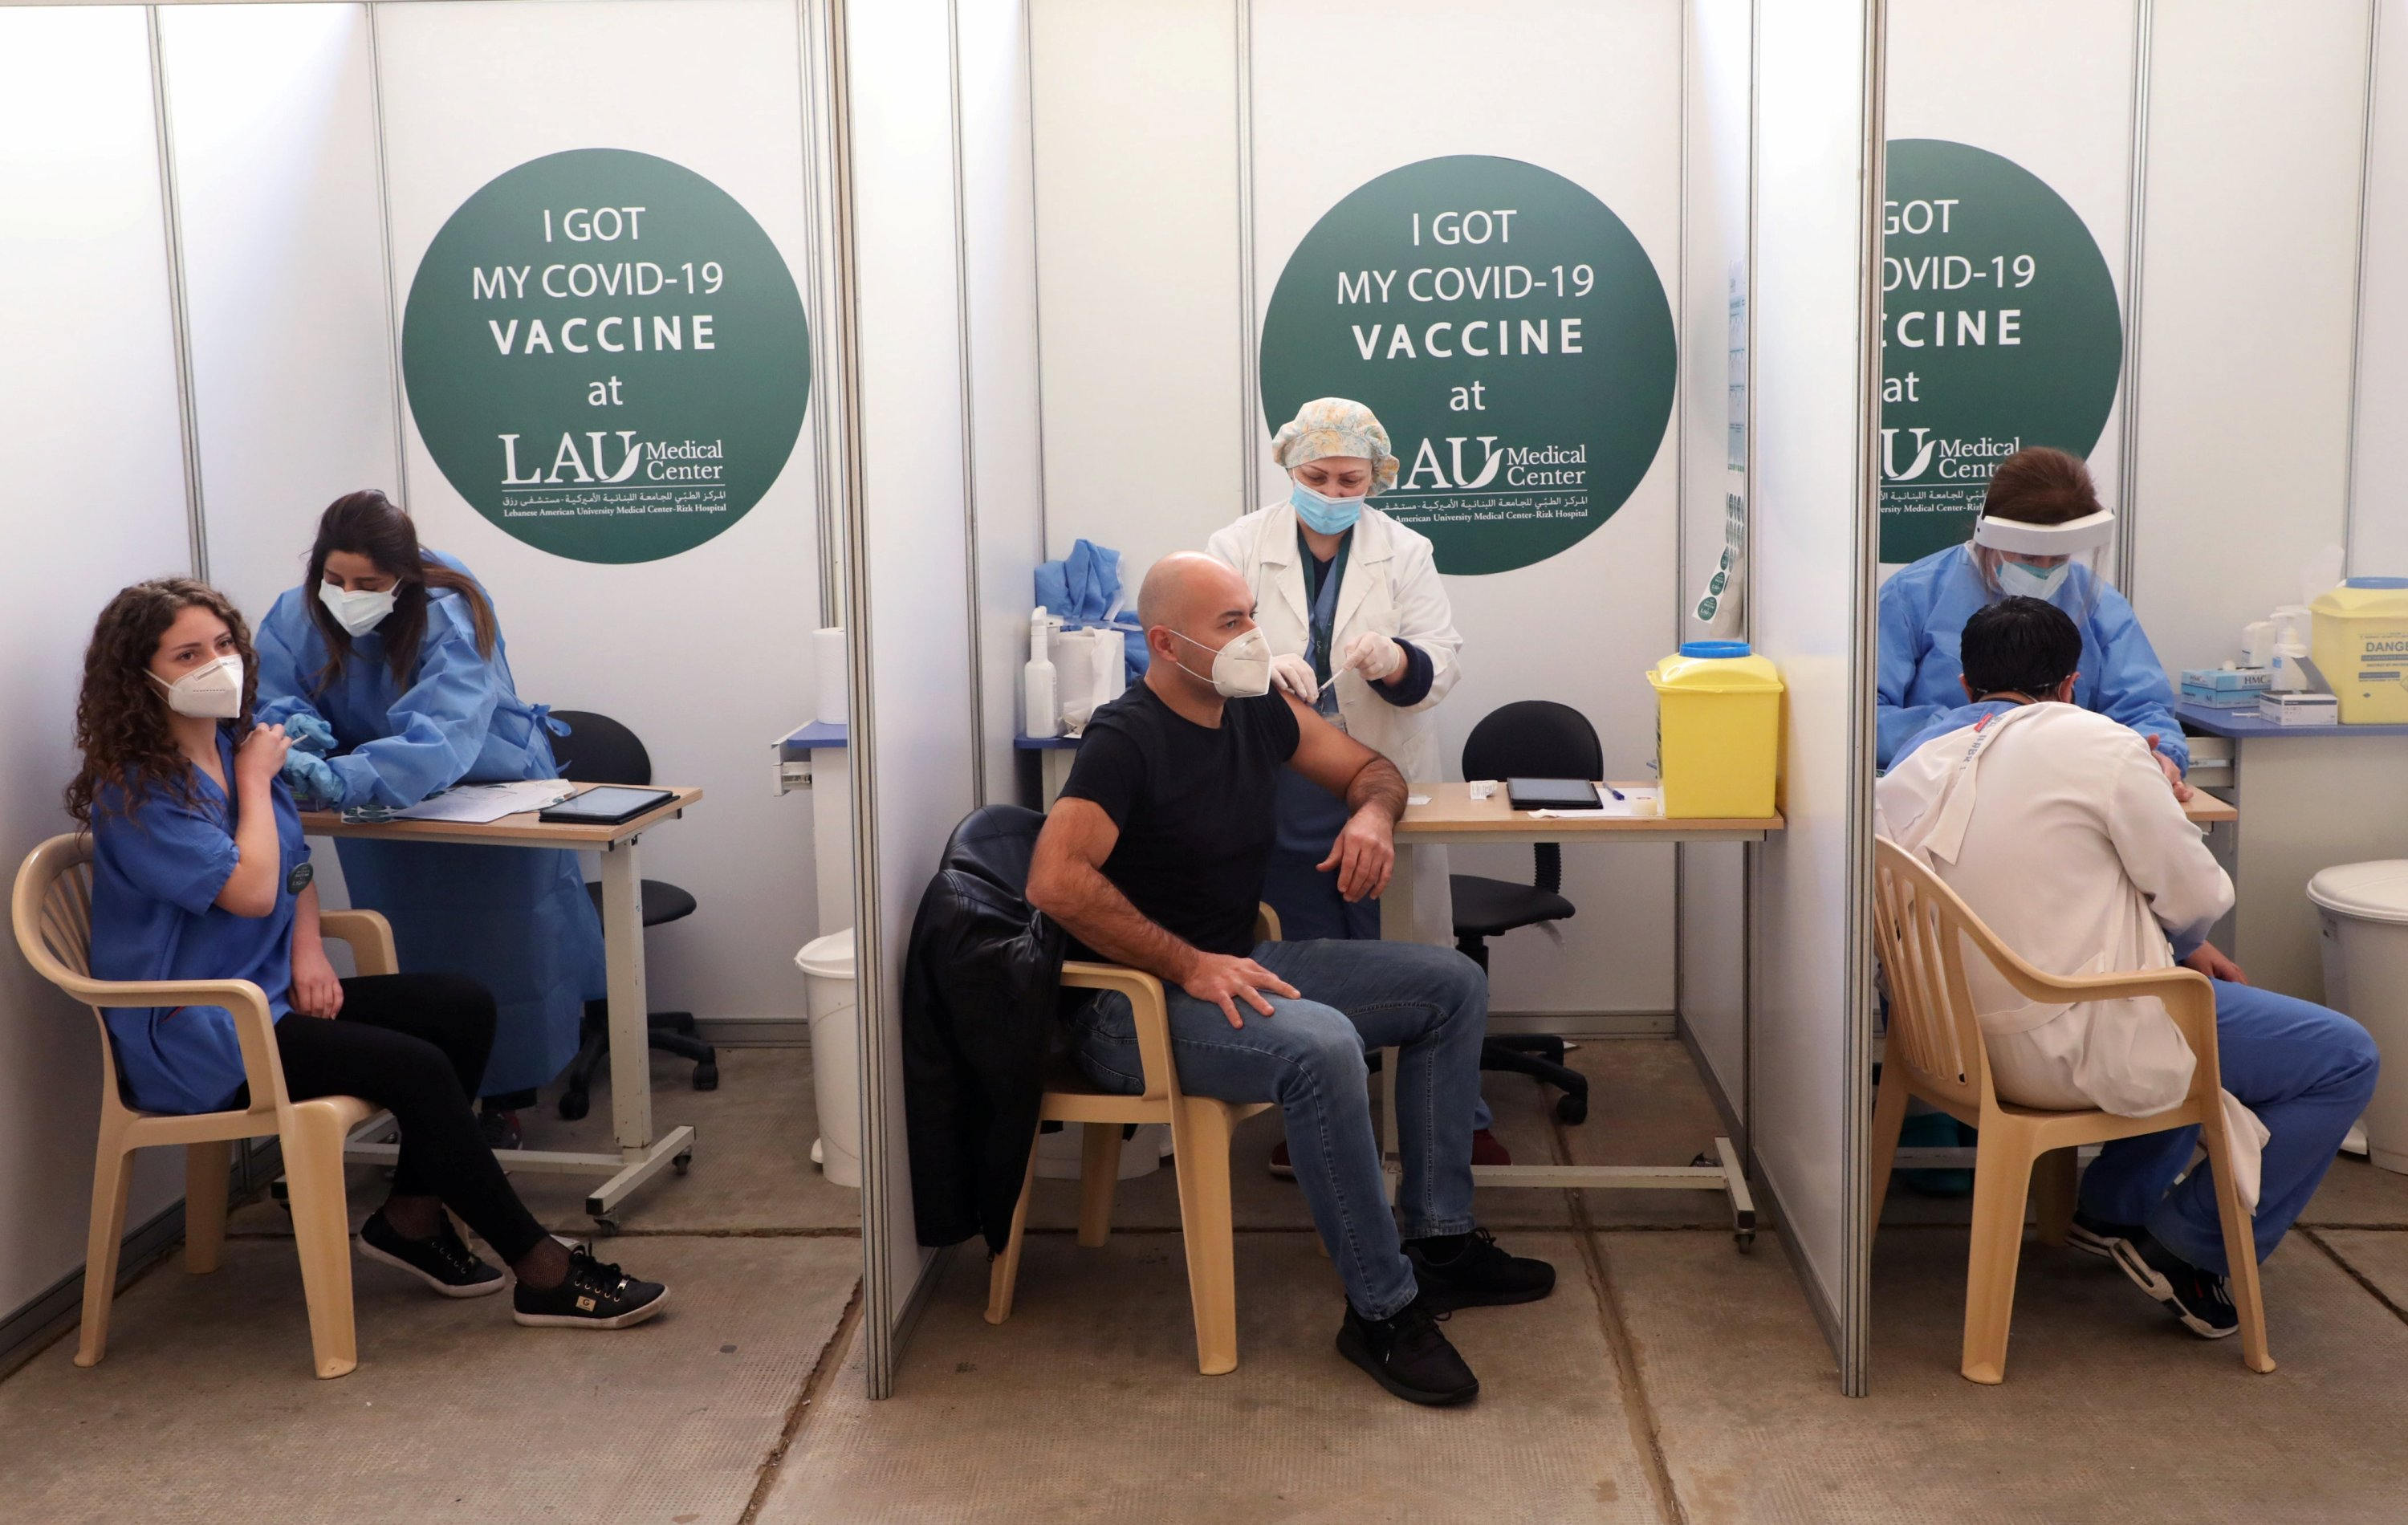 People receive a Pfizer-BioNTech COVID-19 vaccine dose during a coronavirus vaccination campaign at Lebanese American University Medical Center-Rizk Hospital in Beirut, Lebanon, Feb. 16, 2021. (REUTERS/Mohamed Azakir)